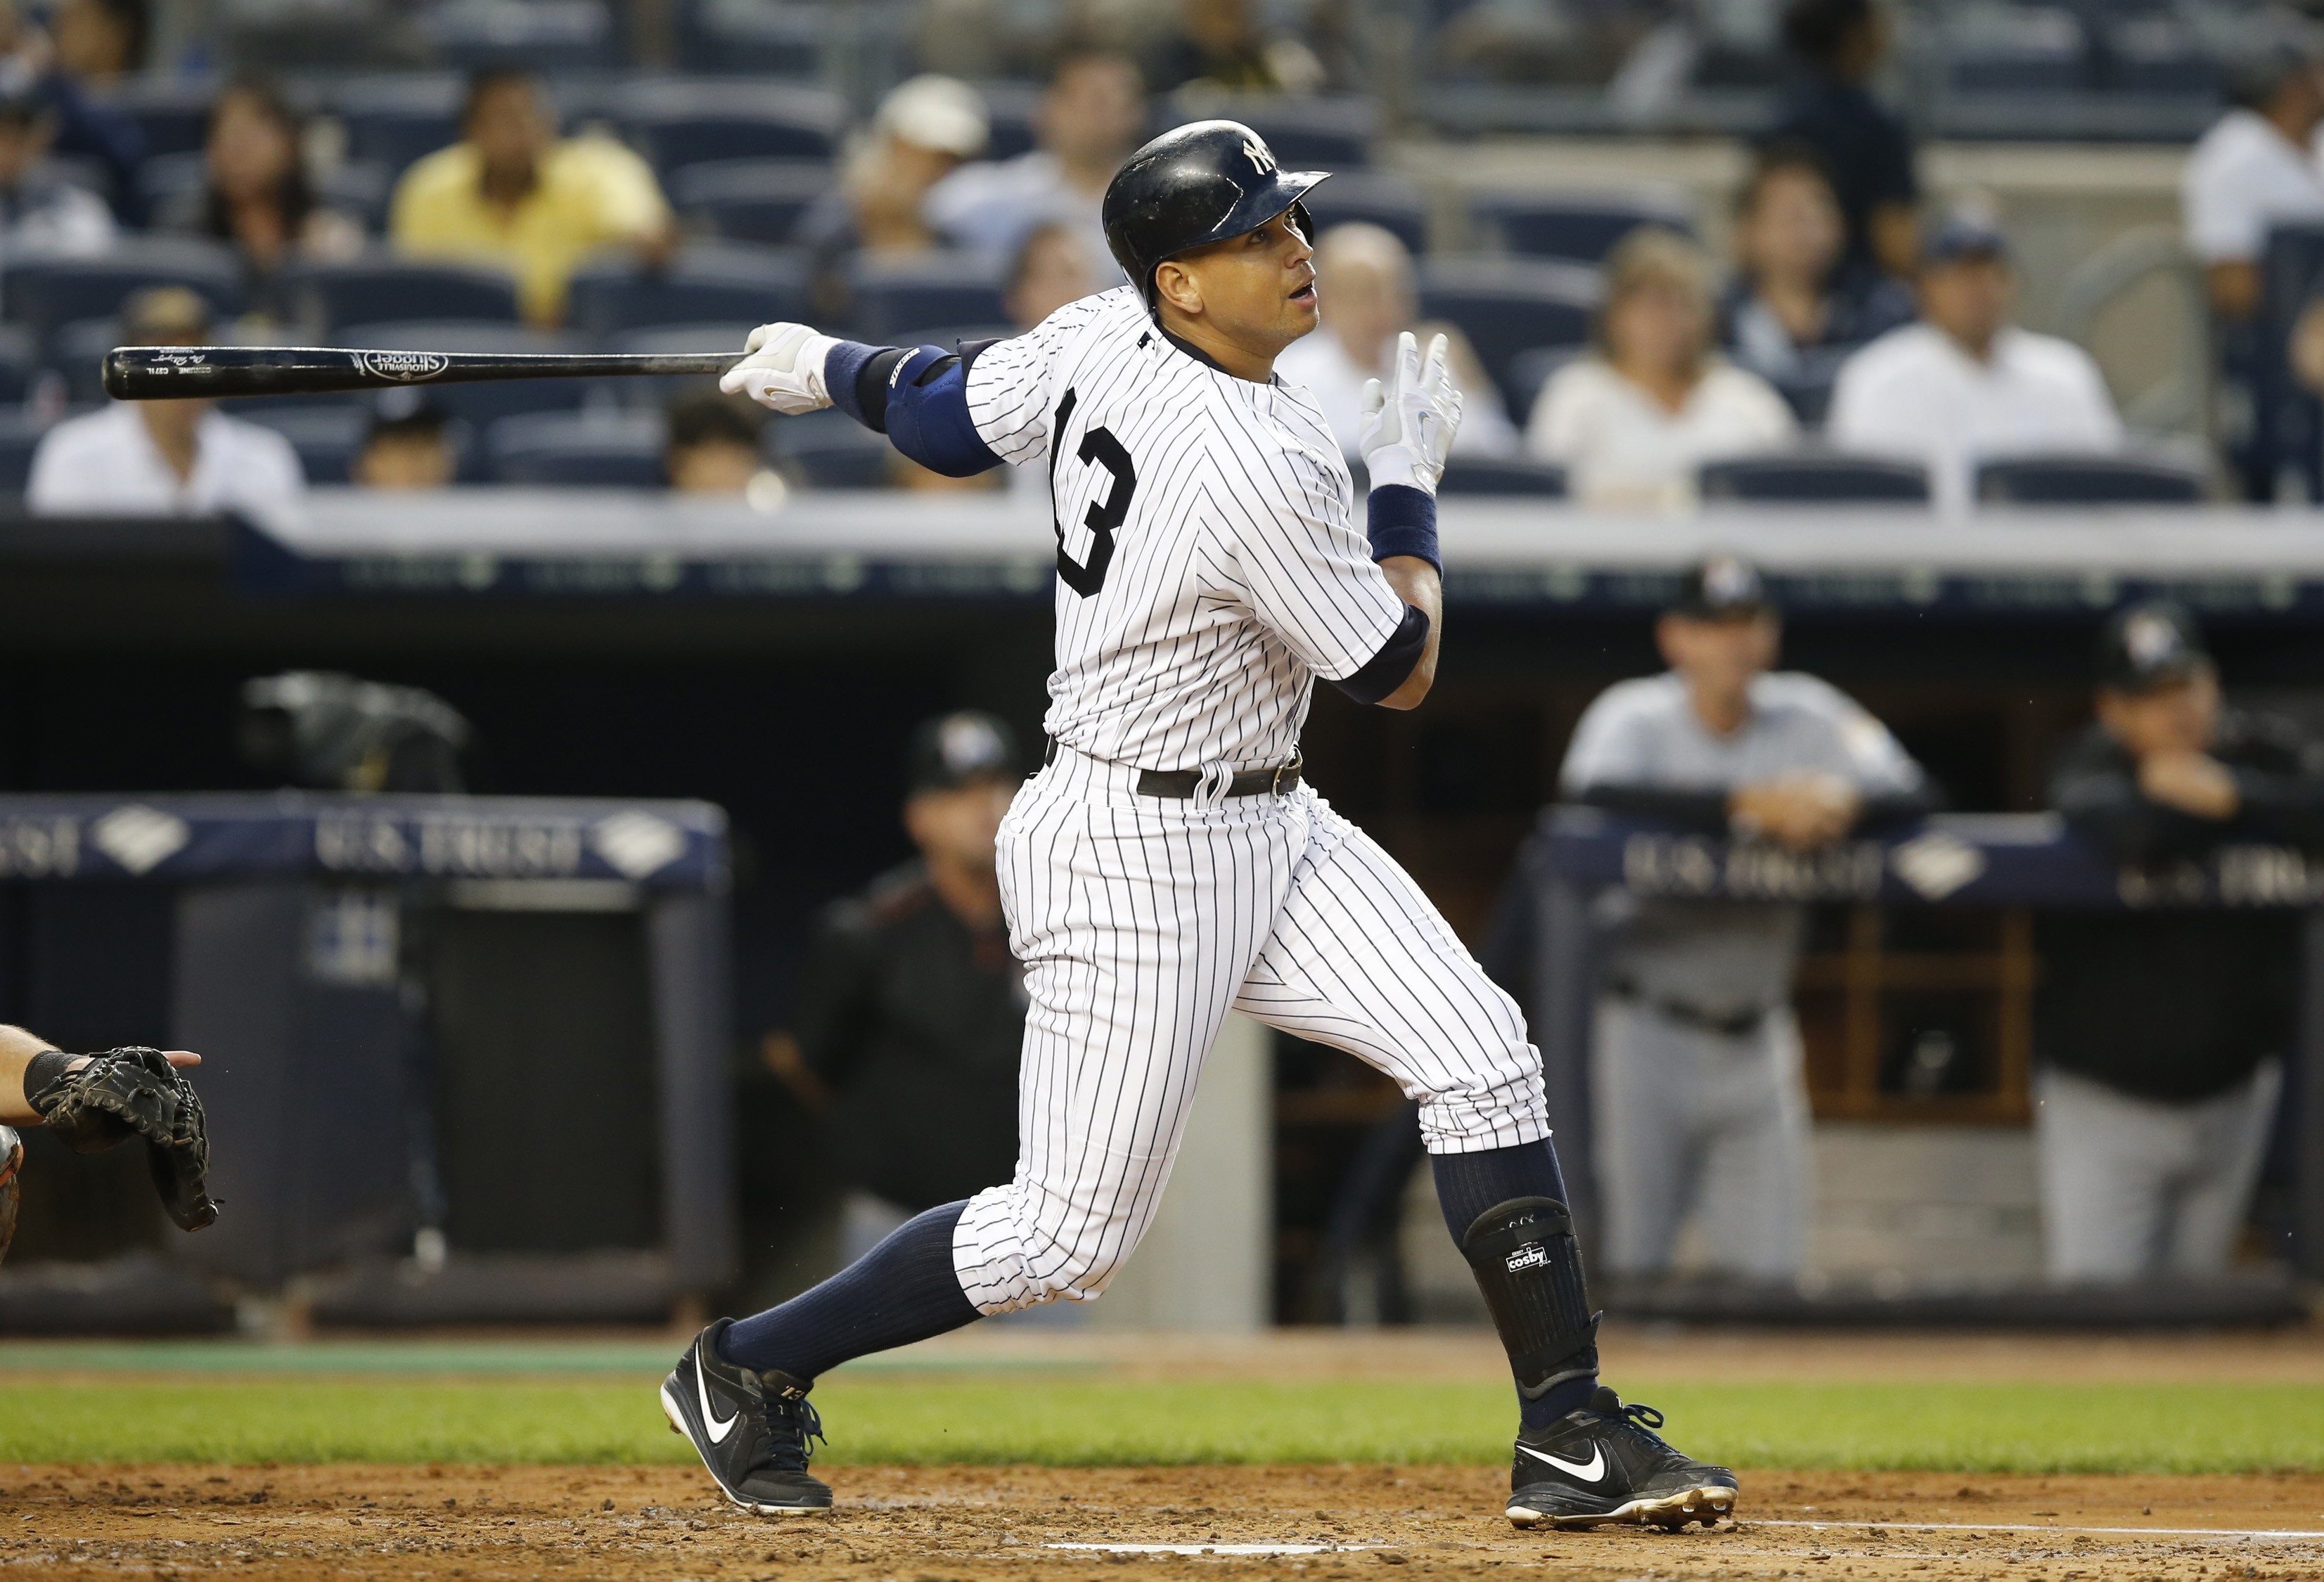 New York Yankees designated hitter Alex Rodriguez (13) watches his third-inning flyout to right field in a baseball game against the Miami Marlins at Yankee Stadium in New York, Thursday, June 18, 2015.  (AP Photo/Kathy Willens)